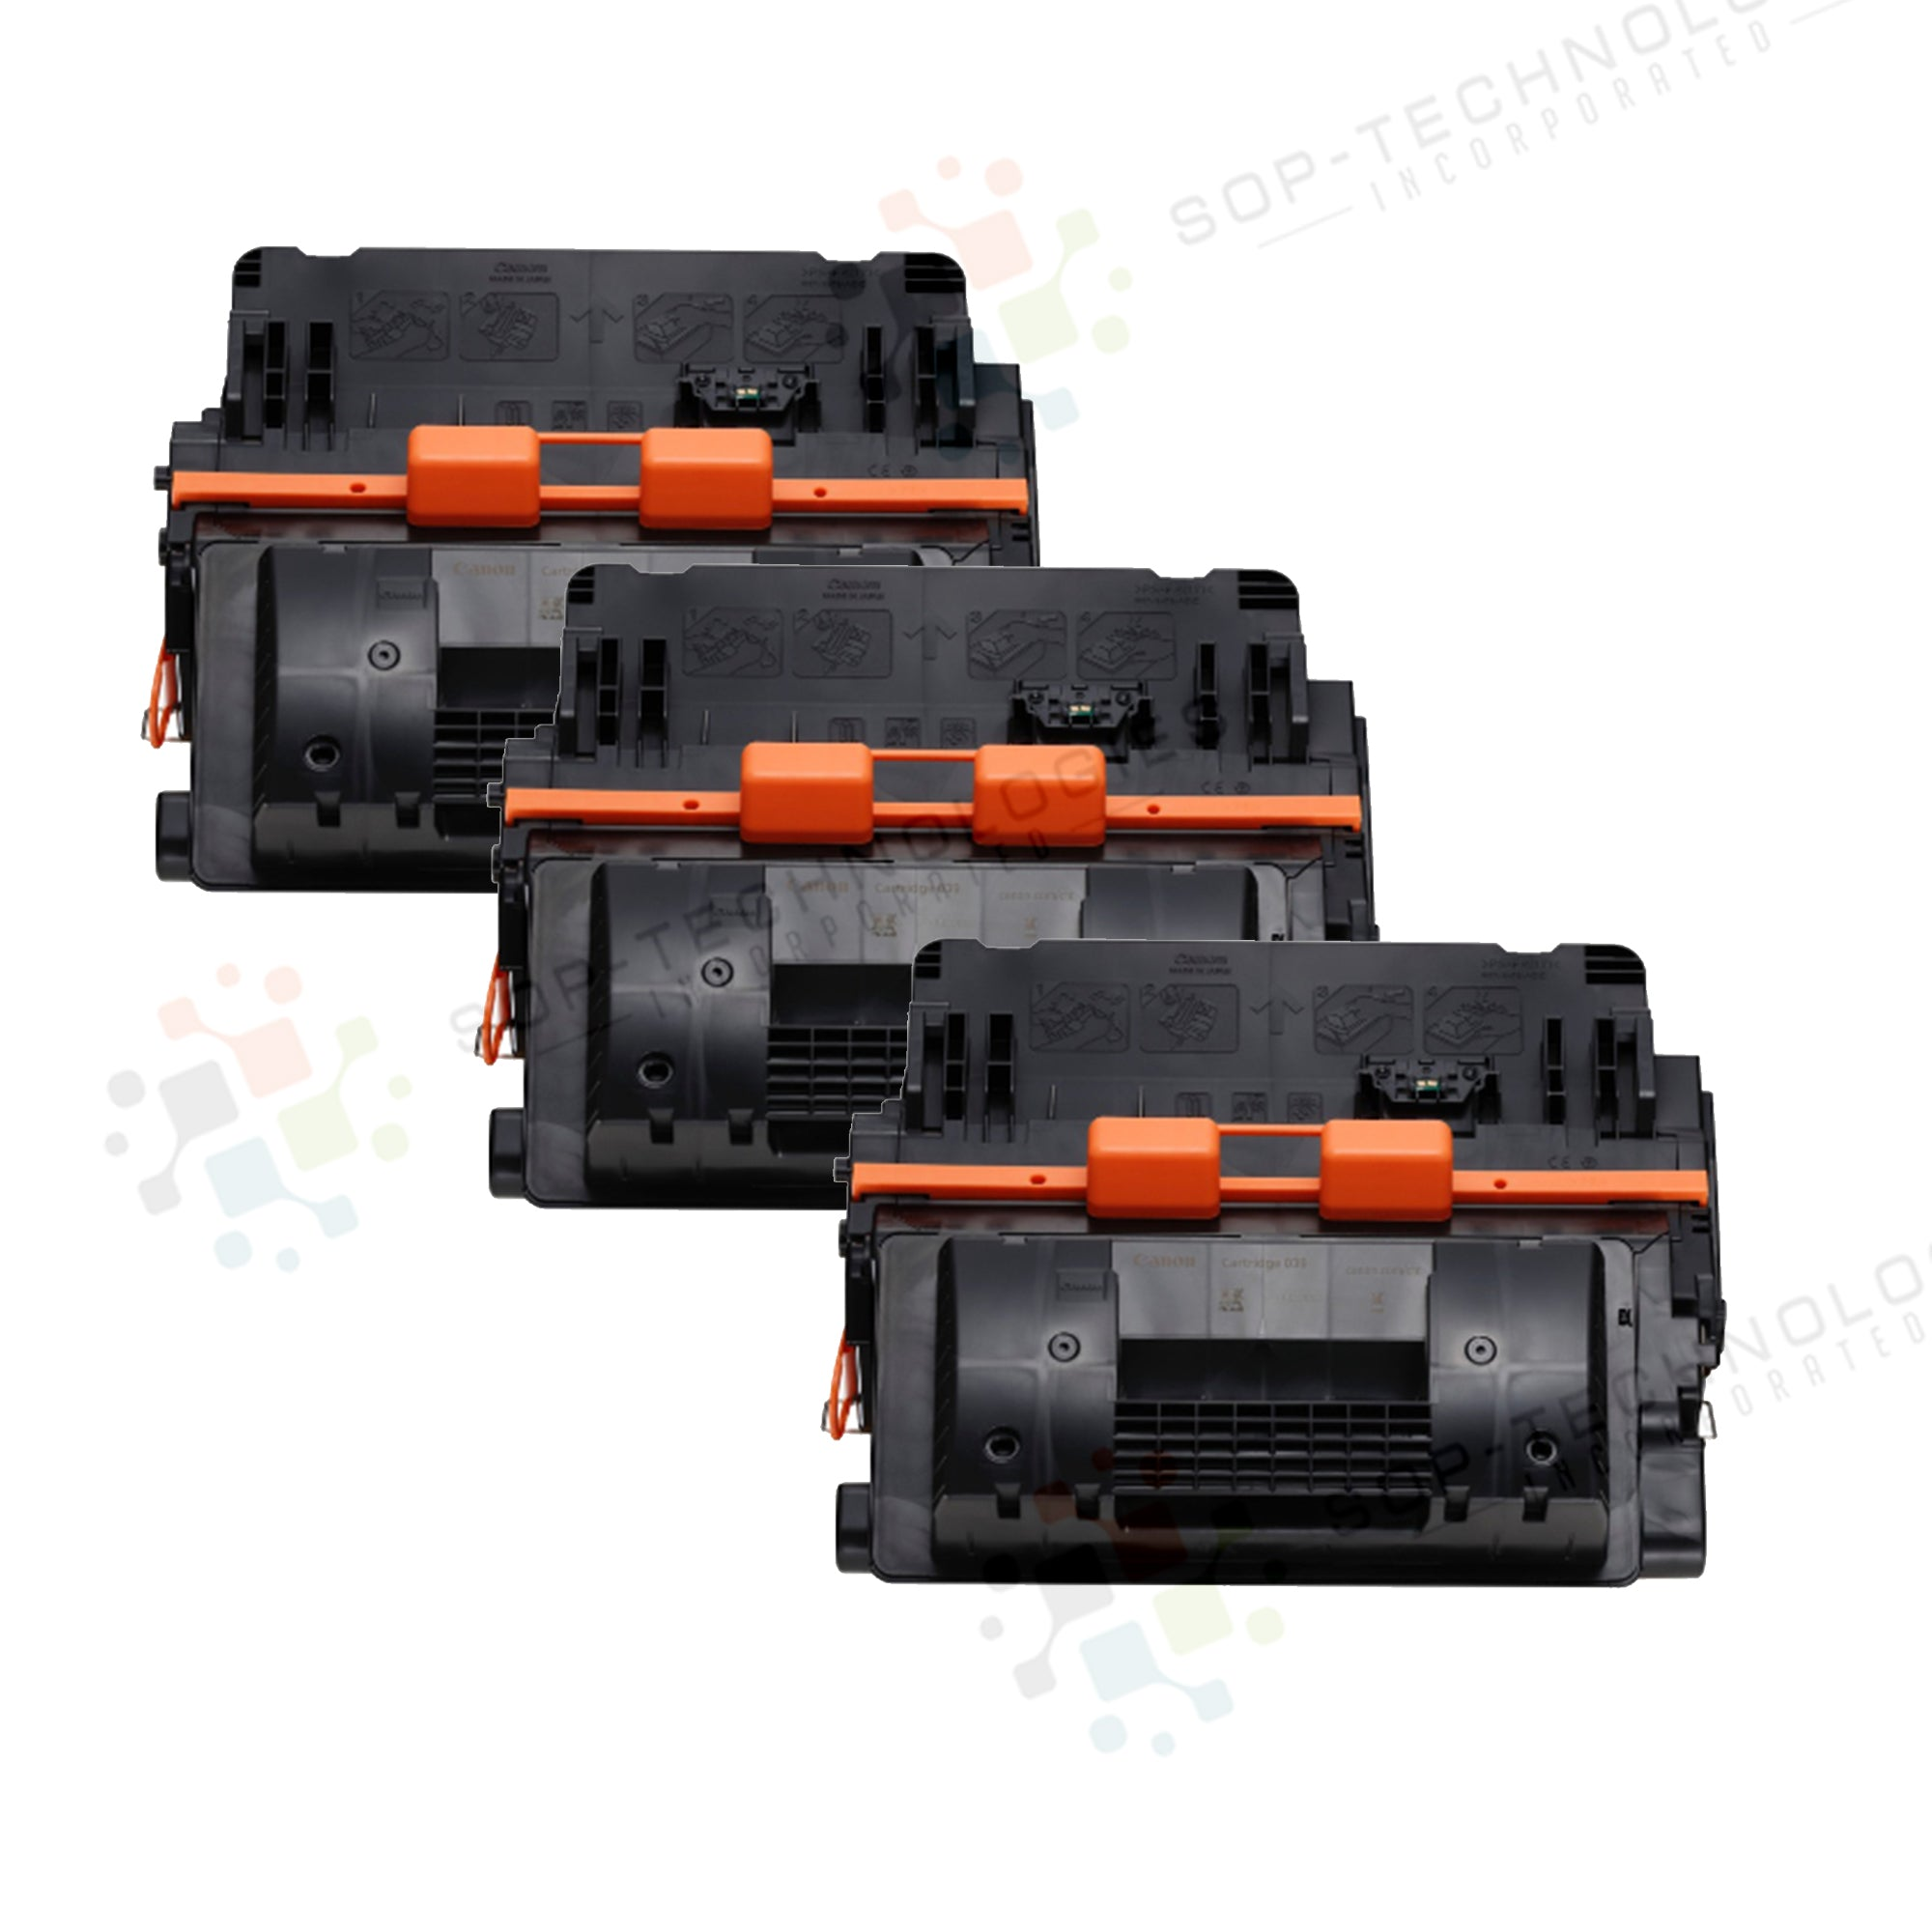 3pk Toner Cartridge Compatible Replacement for Canon imageCLASS  LBP351dn - SOP-TECHNOLOGIES, INC.